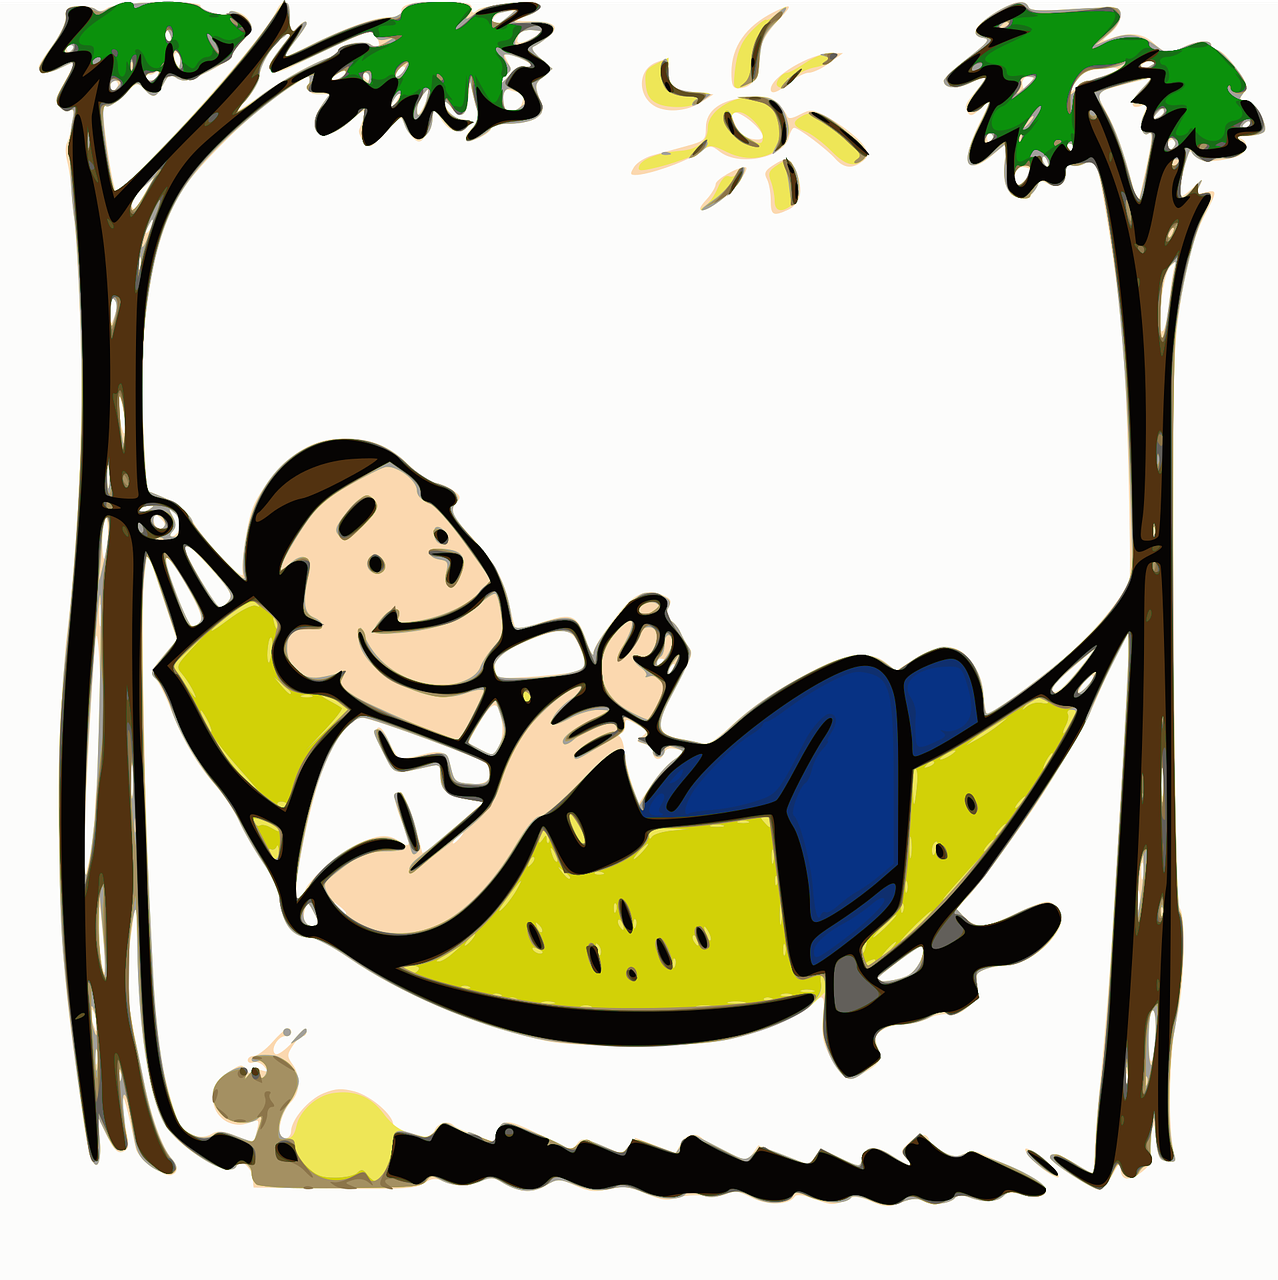 Oxygen clipart free rf illustration by